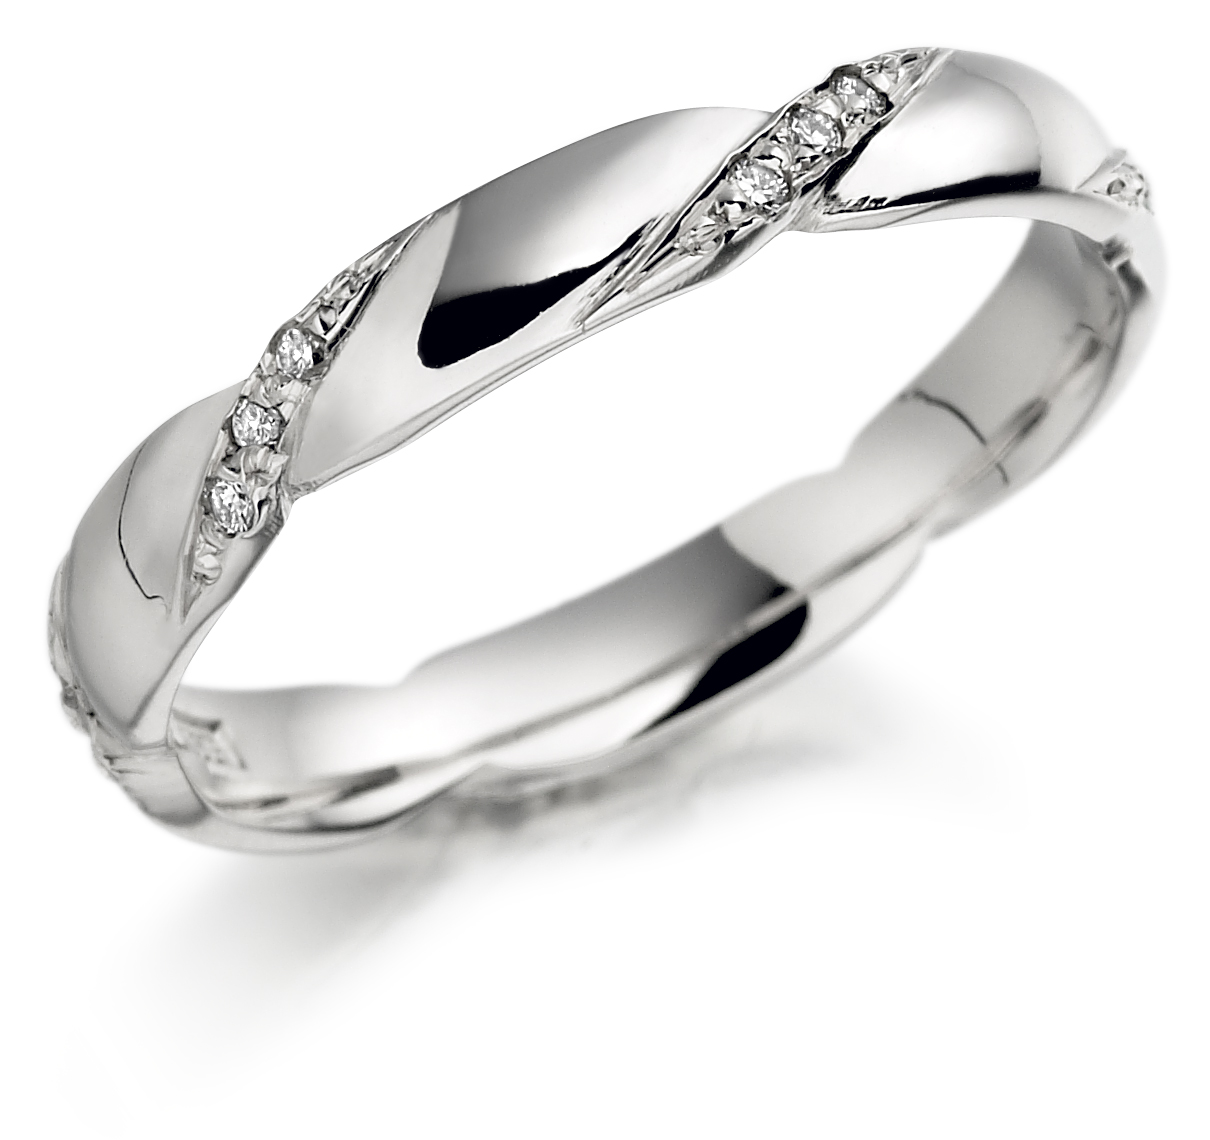 Diamond Rings - does size matter?